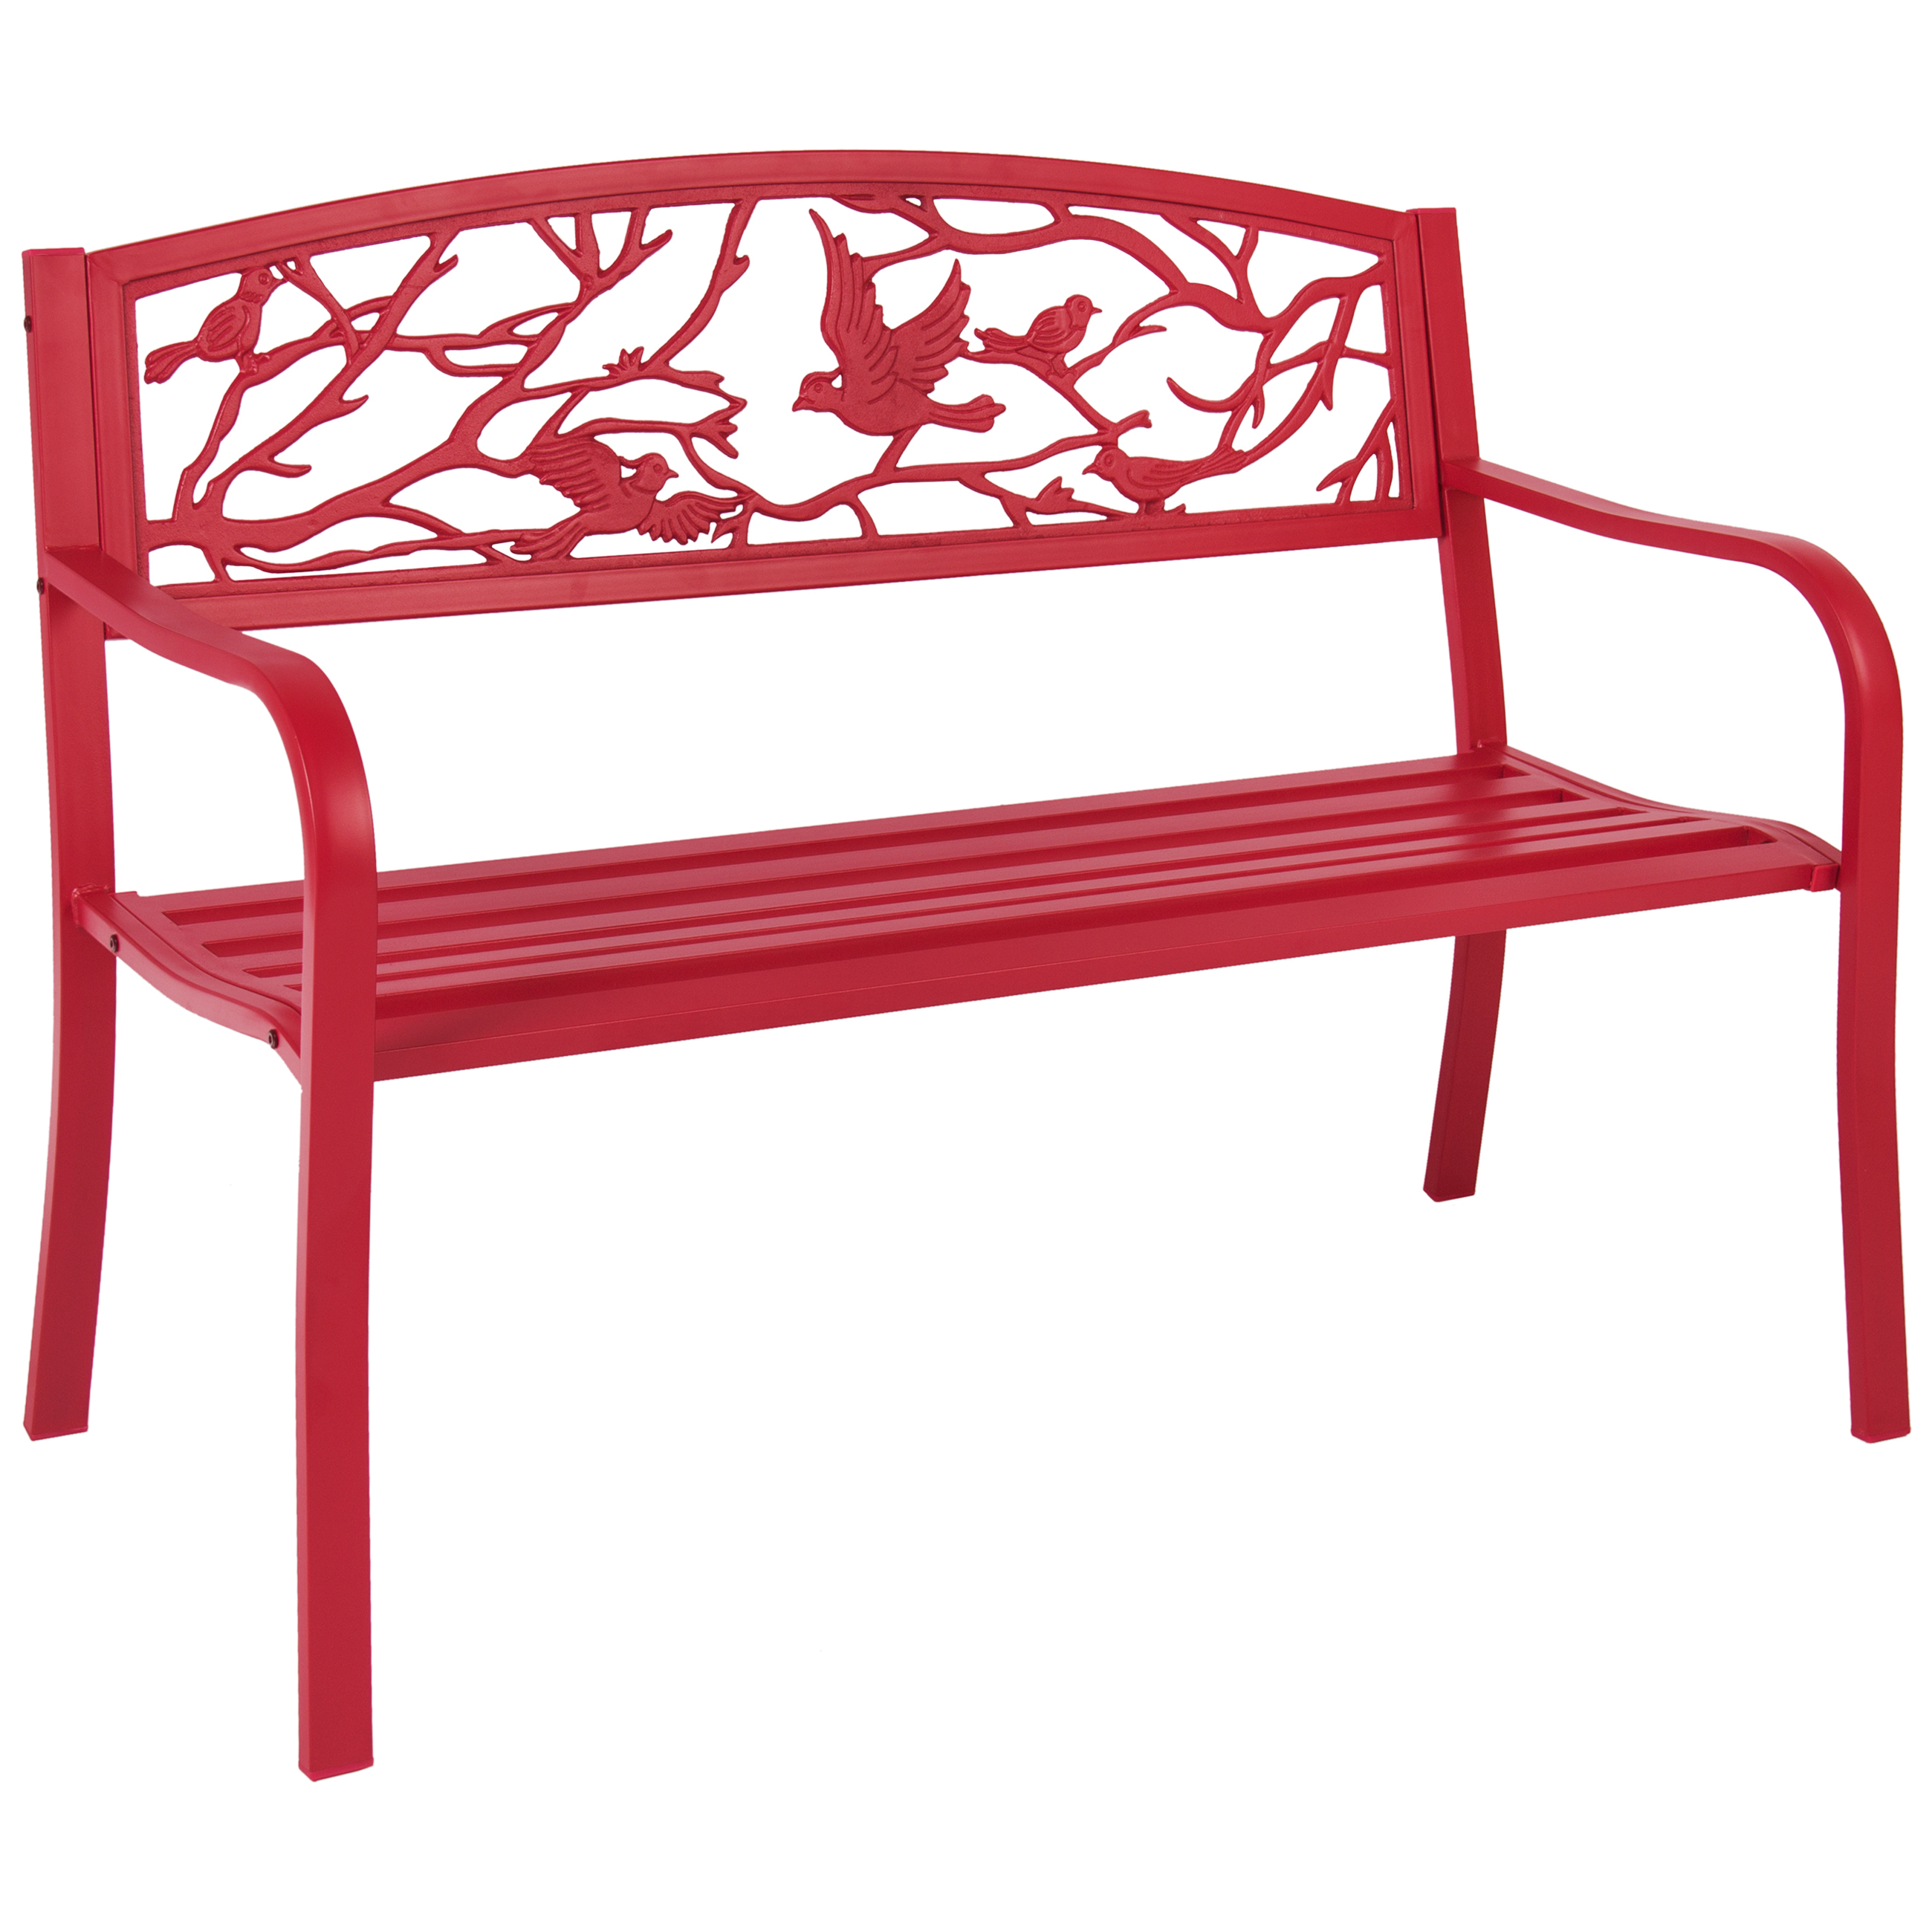 Best Choice Products Rose Red Steel Patio Garden Park Bench Outdoor Living Patio Furniture by Best Choice Products